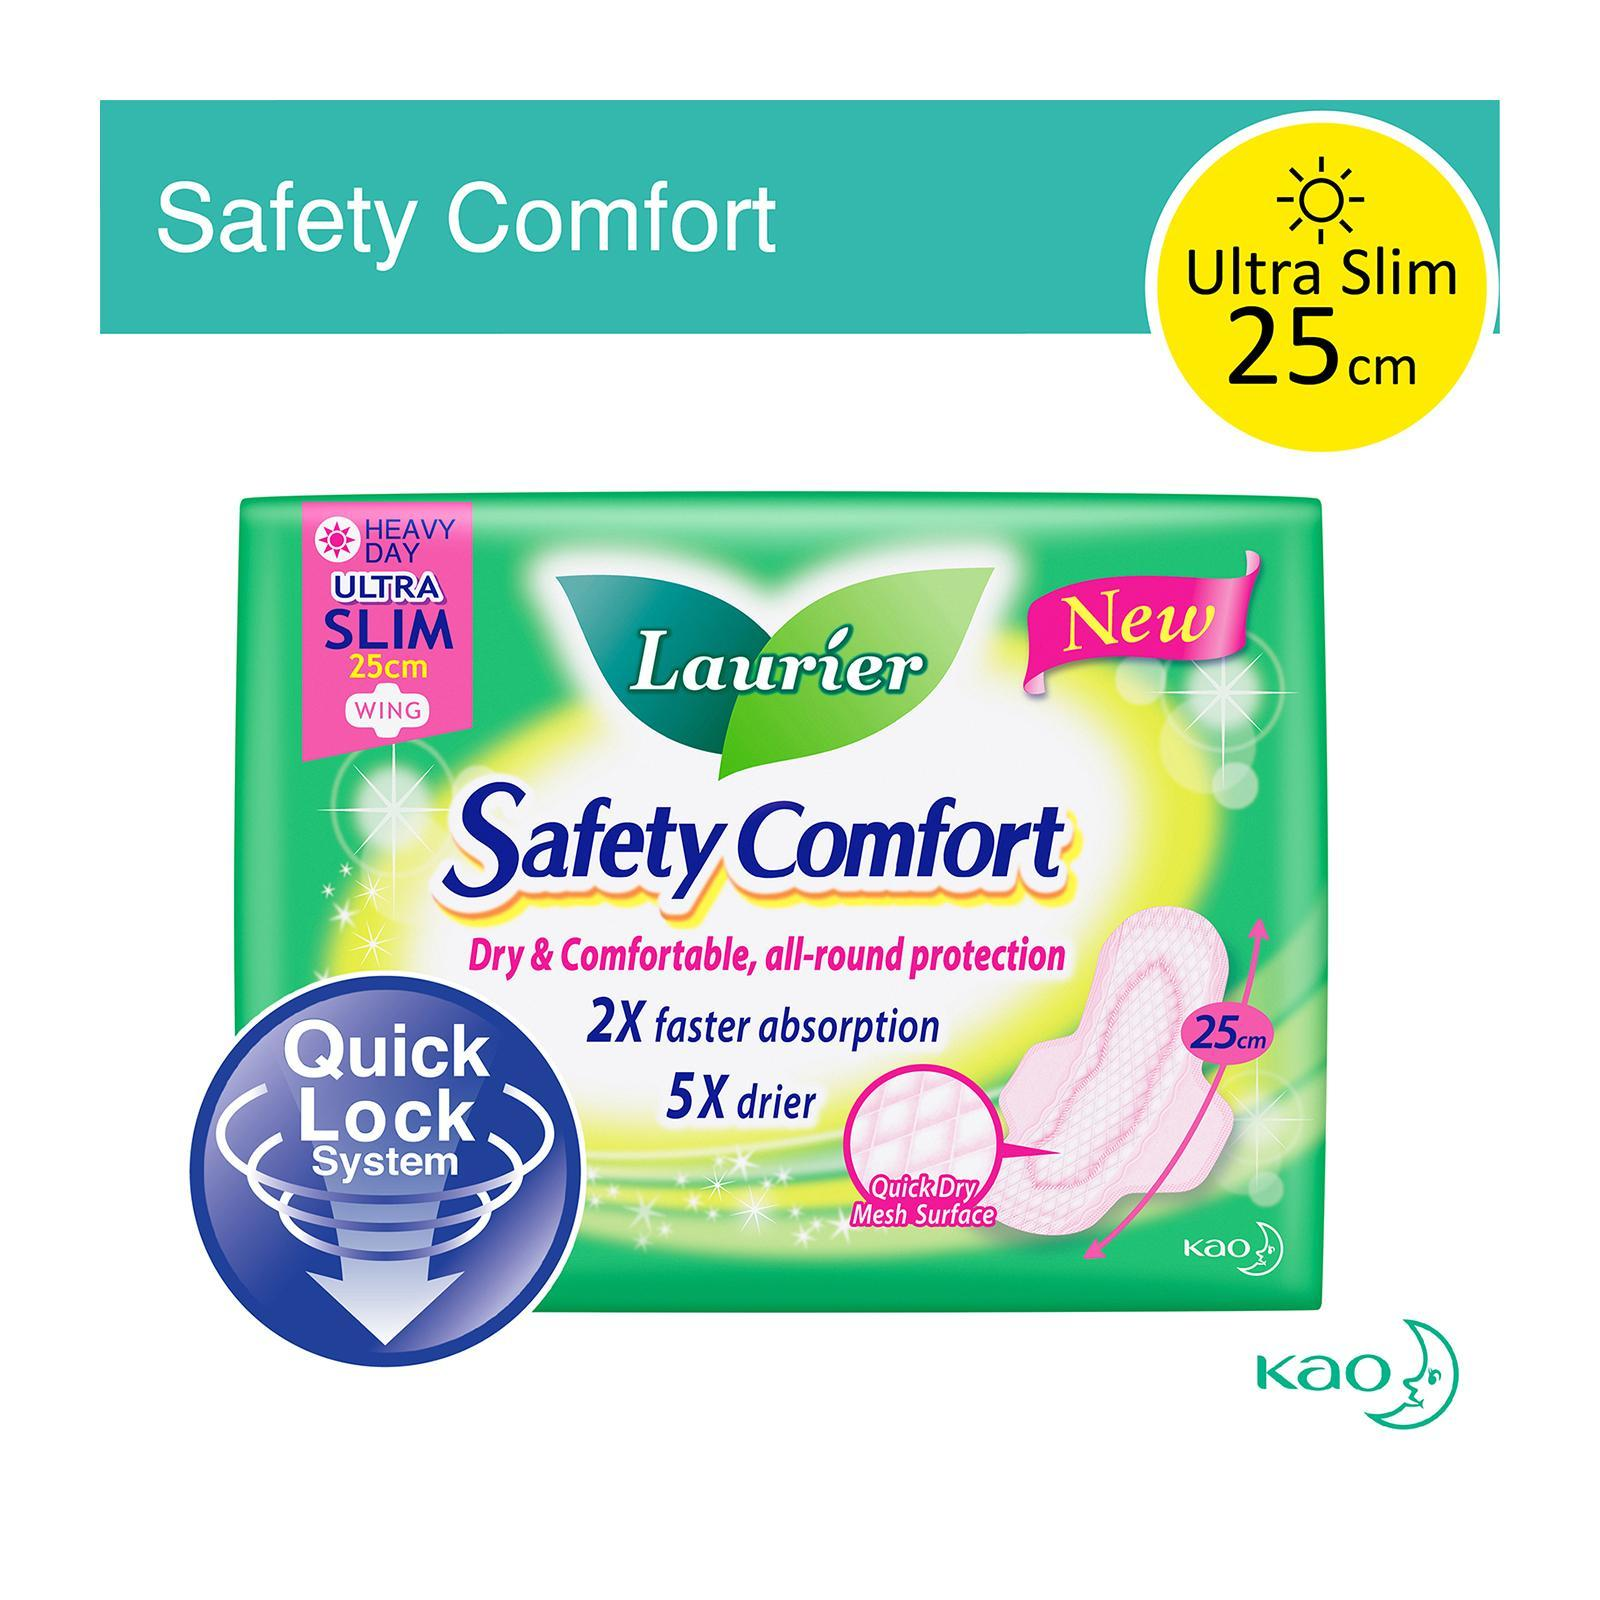 Laurier Safety Comfort Ultra Slim Wing Sanitary Pads 25cm